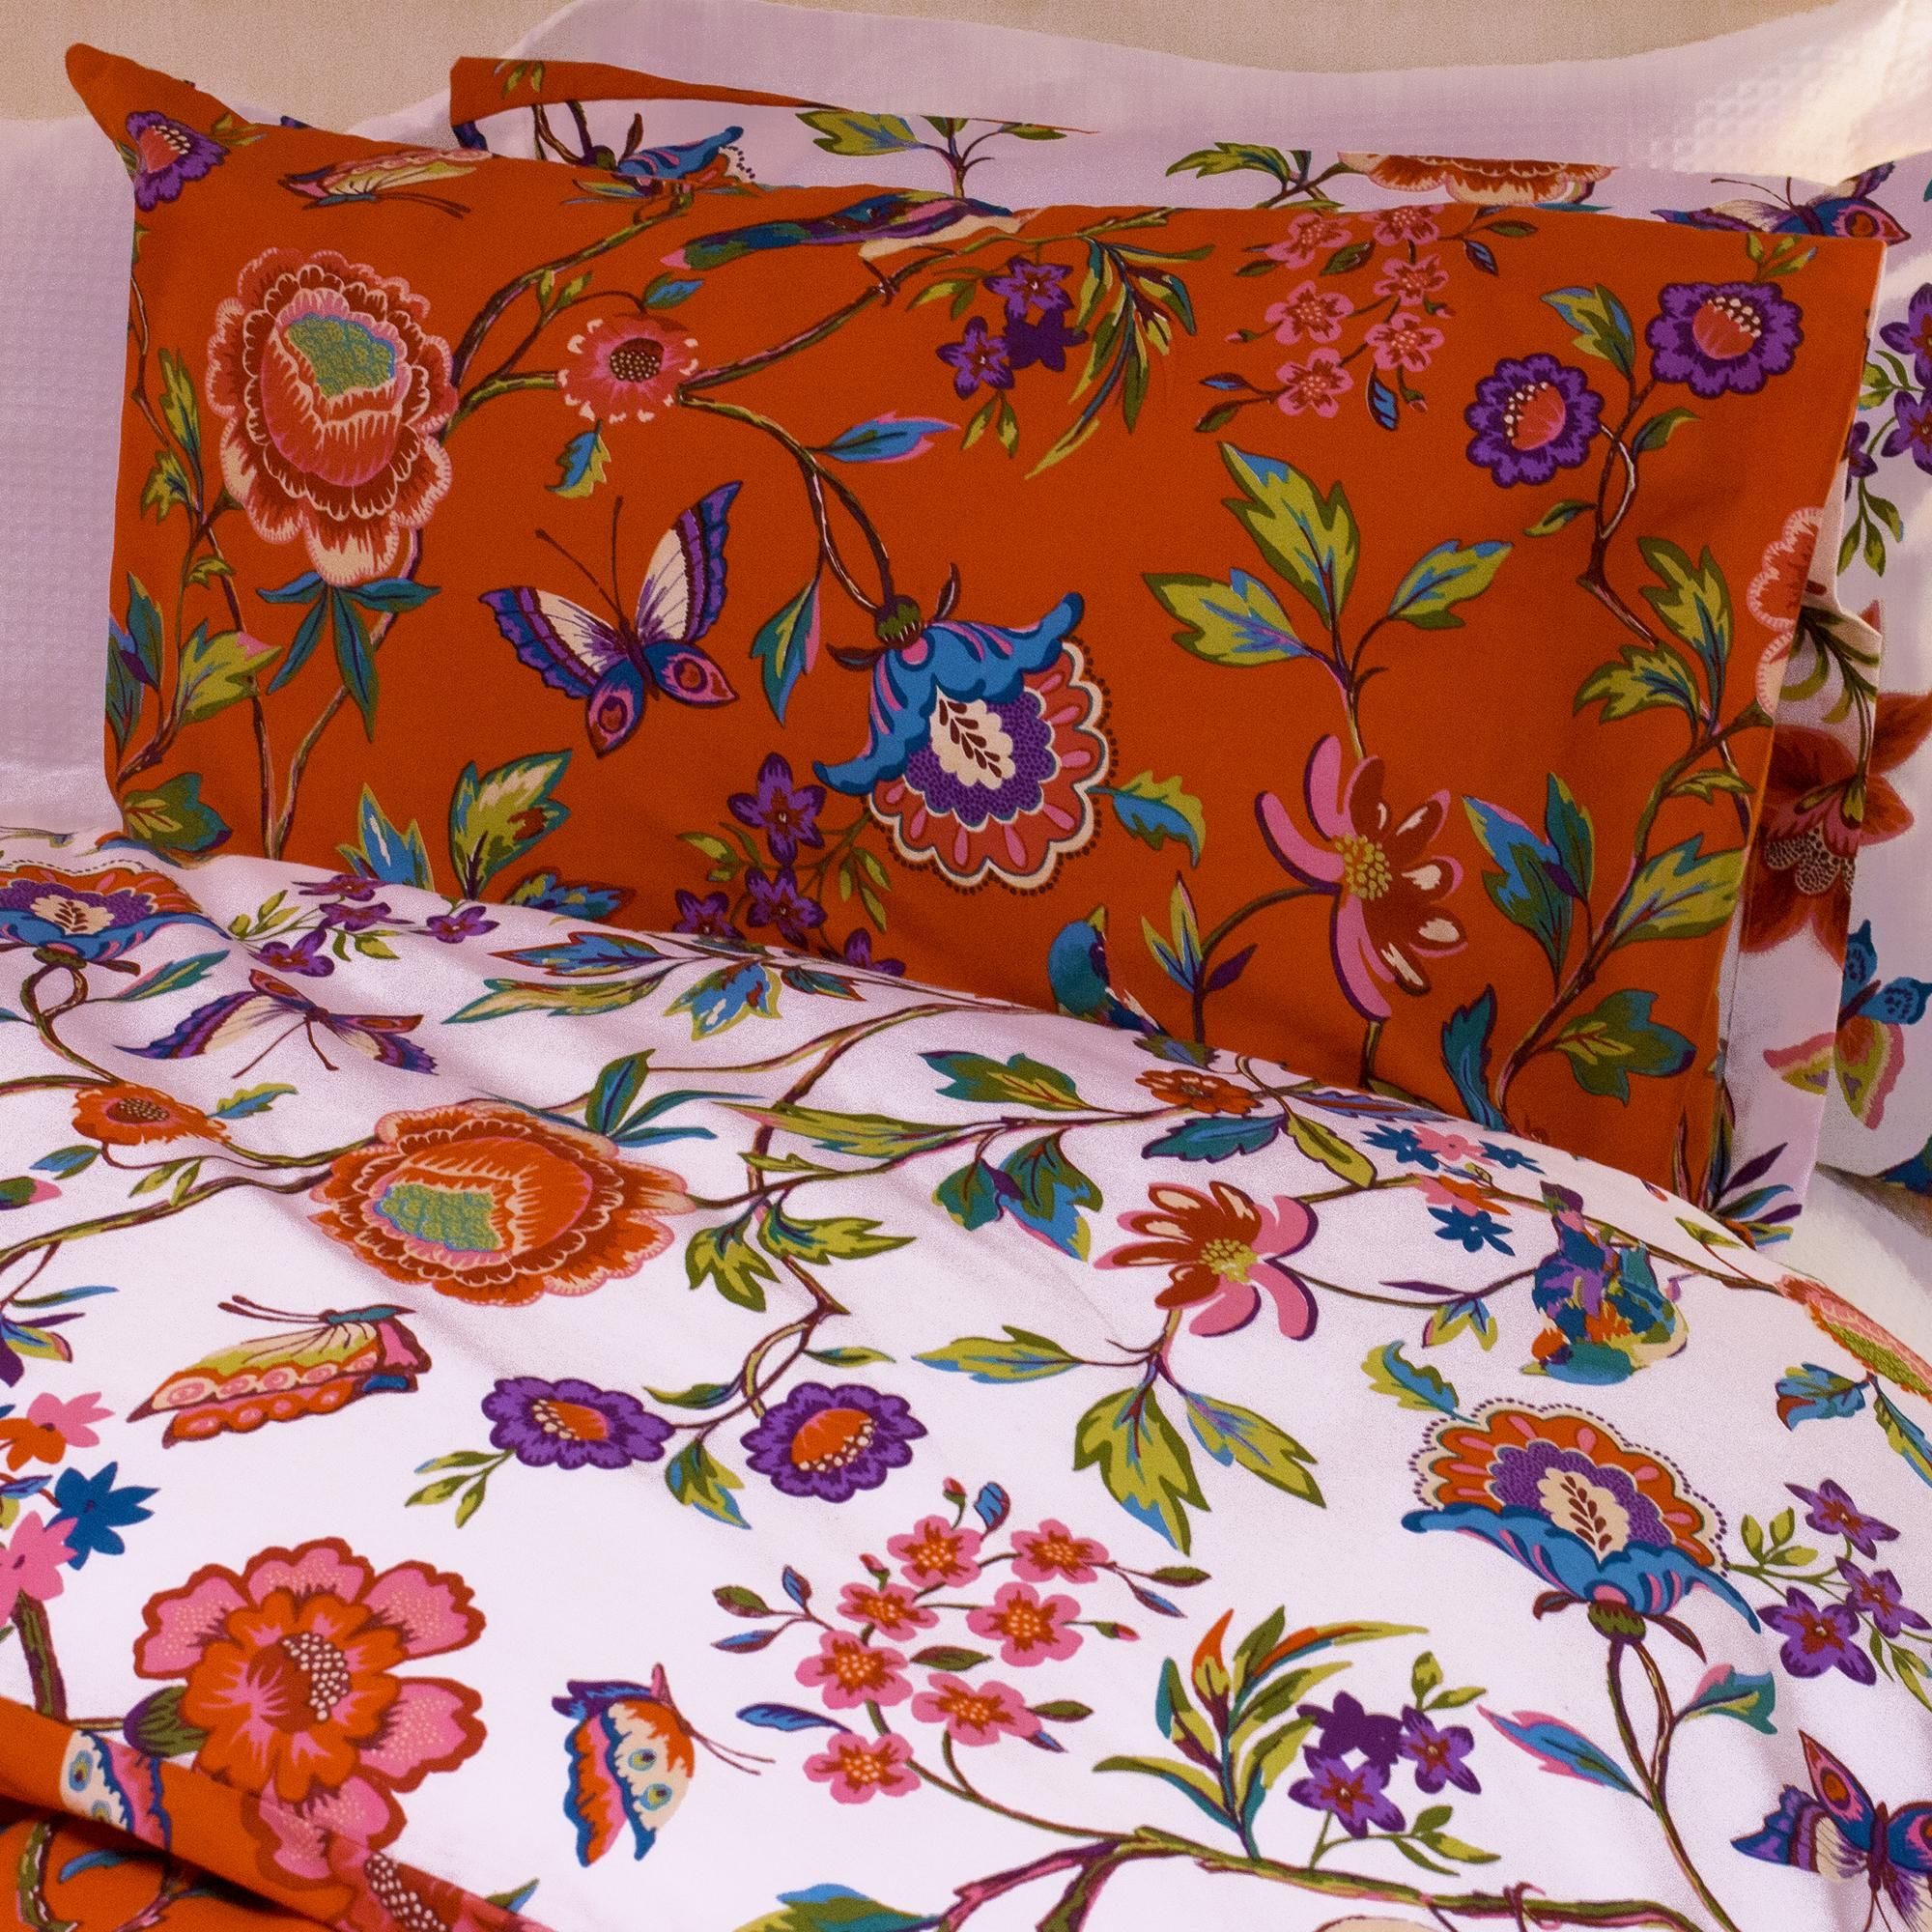 Bold and bright, this Pomelo Orange bed-linen will inject some colour into your bedroom. This floral print featuring tropical birds is paired with a white floral reverse, allowing you to easily switch to a more neutral colour palette if you feel like changing it up. This set is made of a crisp polycotton blend to provide softness and durability.